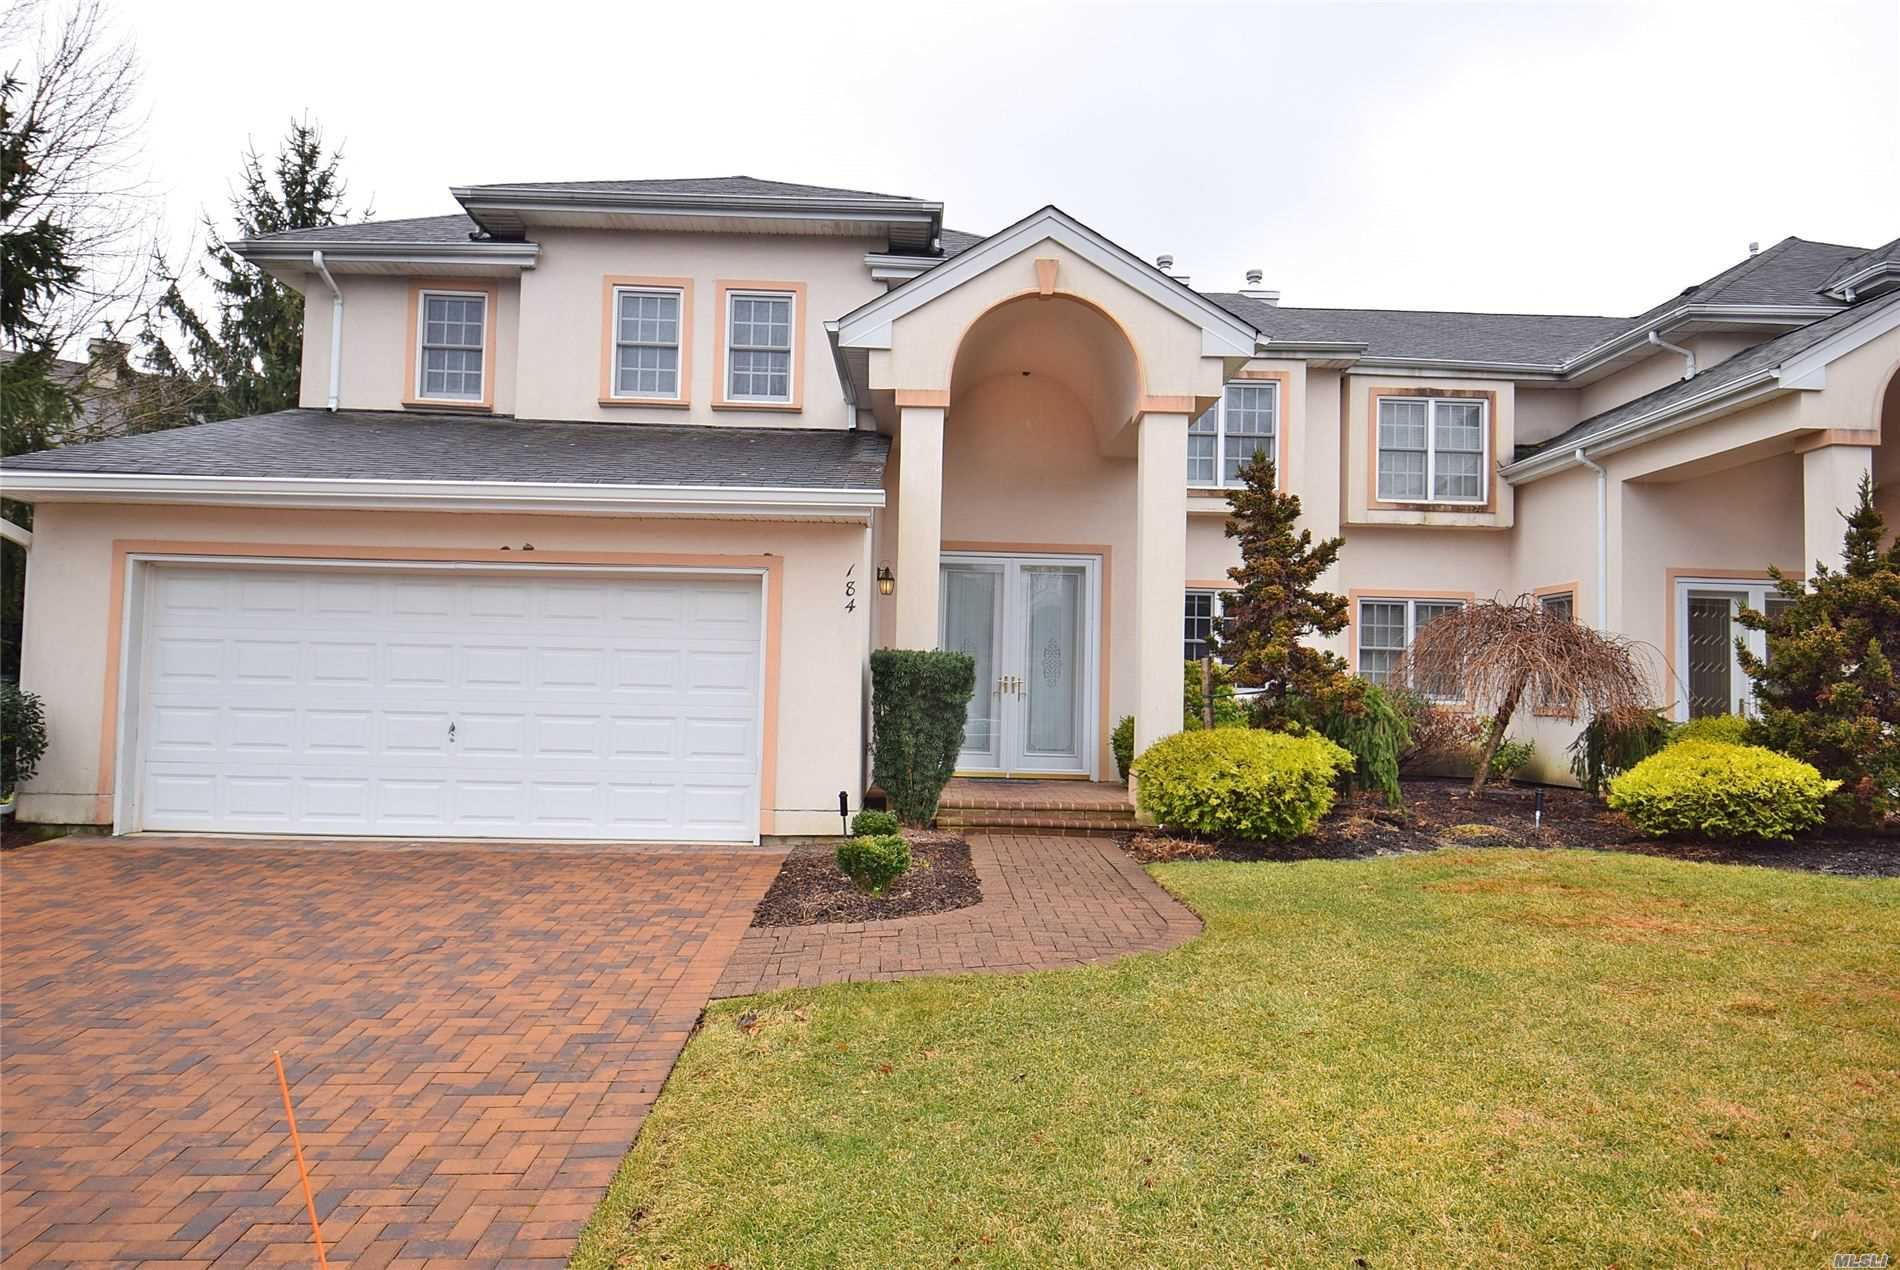 Property for sale at 184 Montecito Crescent, Melville NY 11747, Melville,  New York 11747